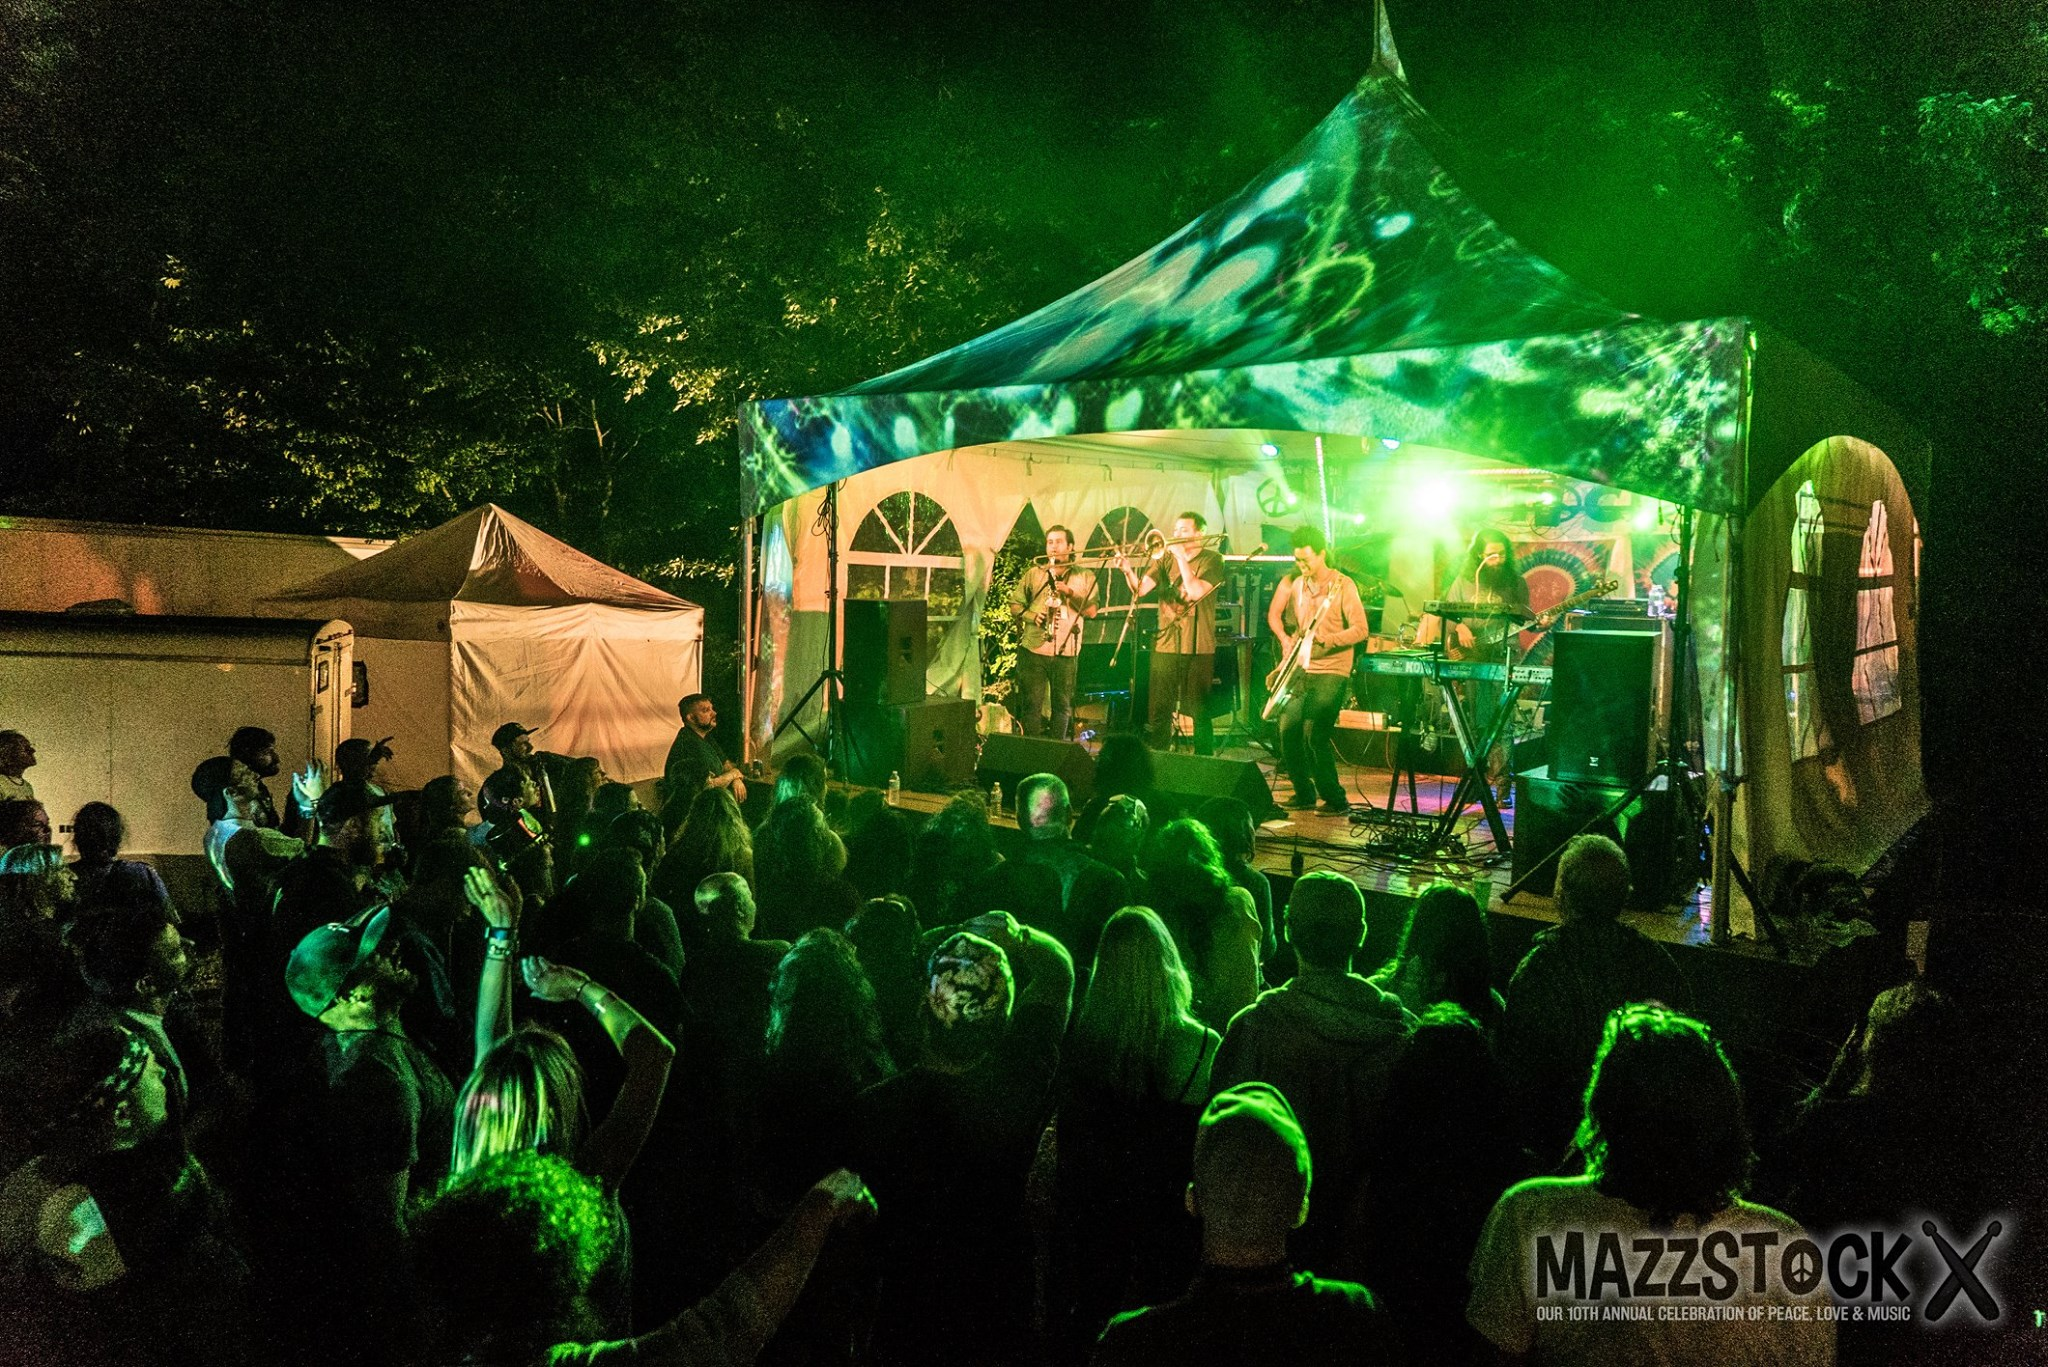 Nyack acts among headliners at Mazzstock 2018